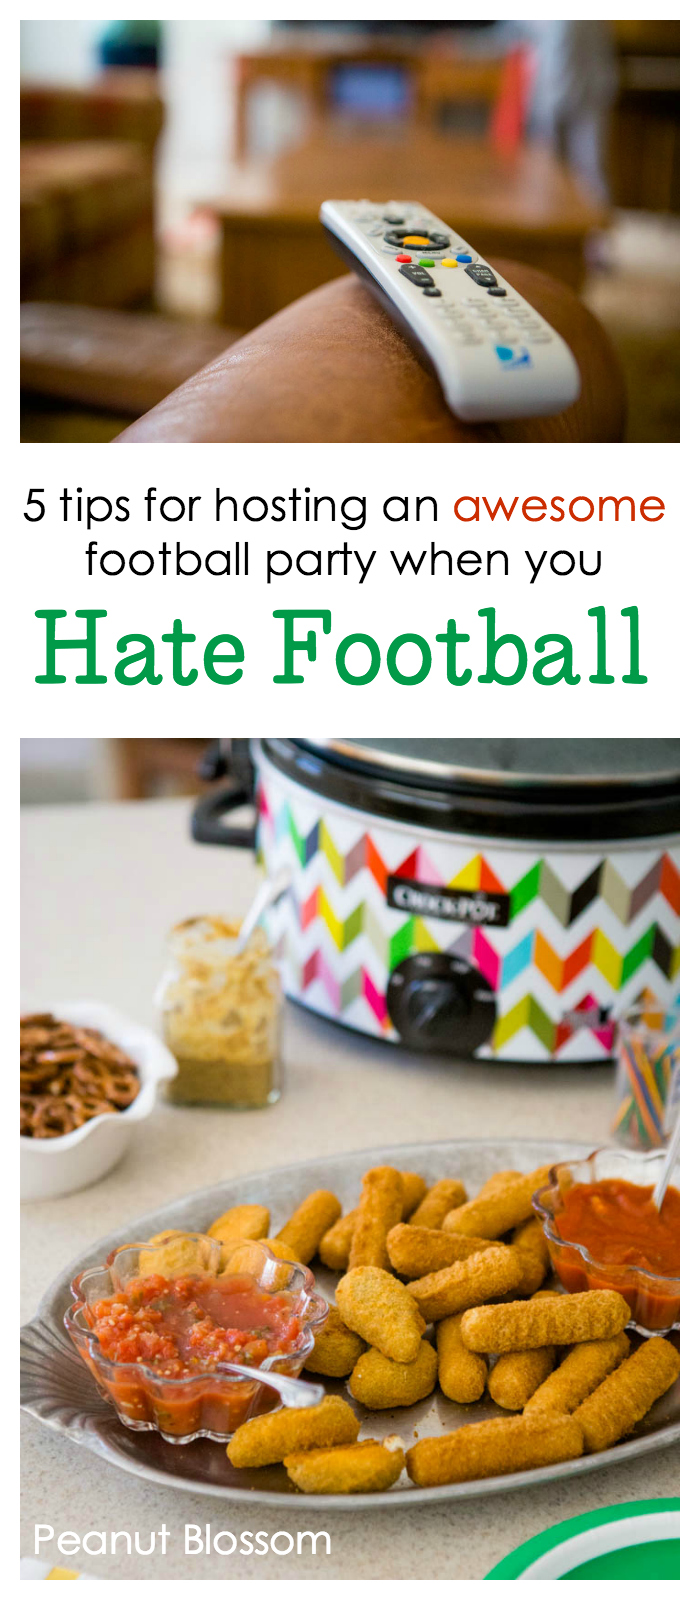 5 Tips for hosting an awesome football party when you hate football